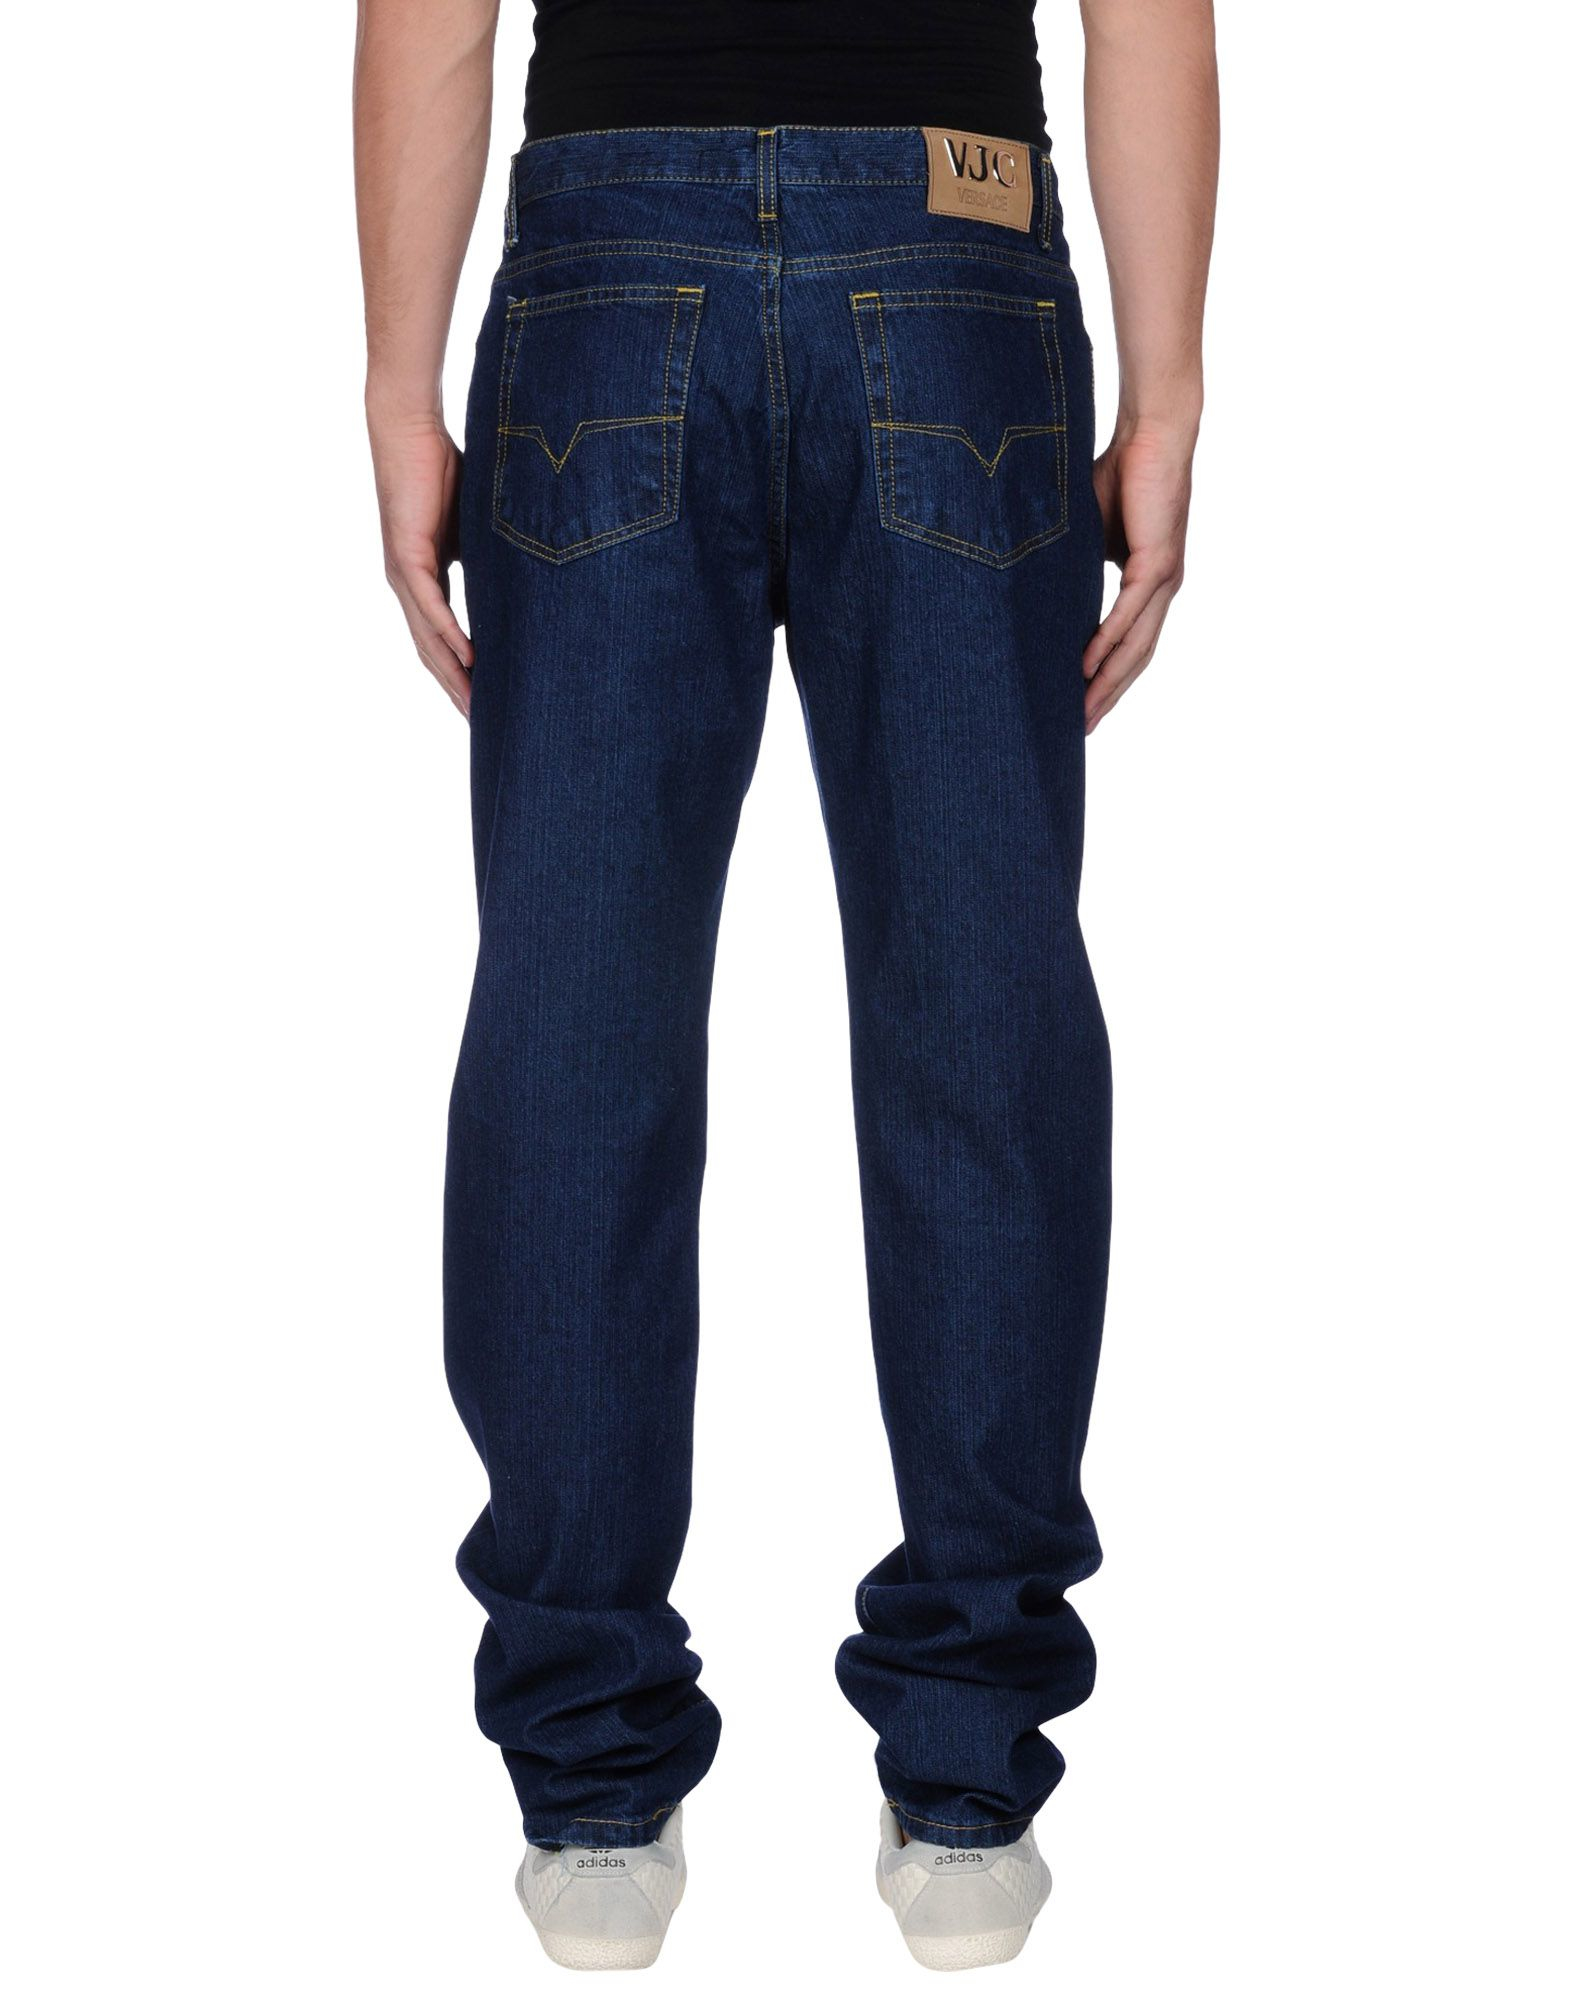 lyst versace jeans denim trousers in blue for men. Black Bedroom Furniture Sets. Home Design Ideas